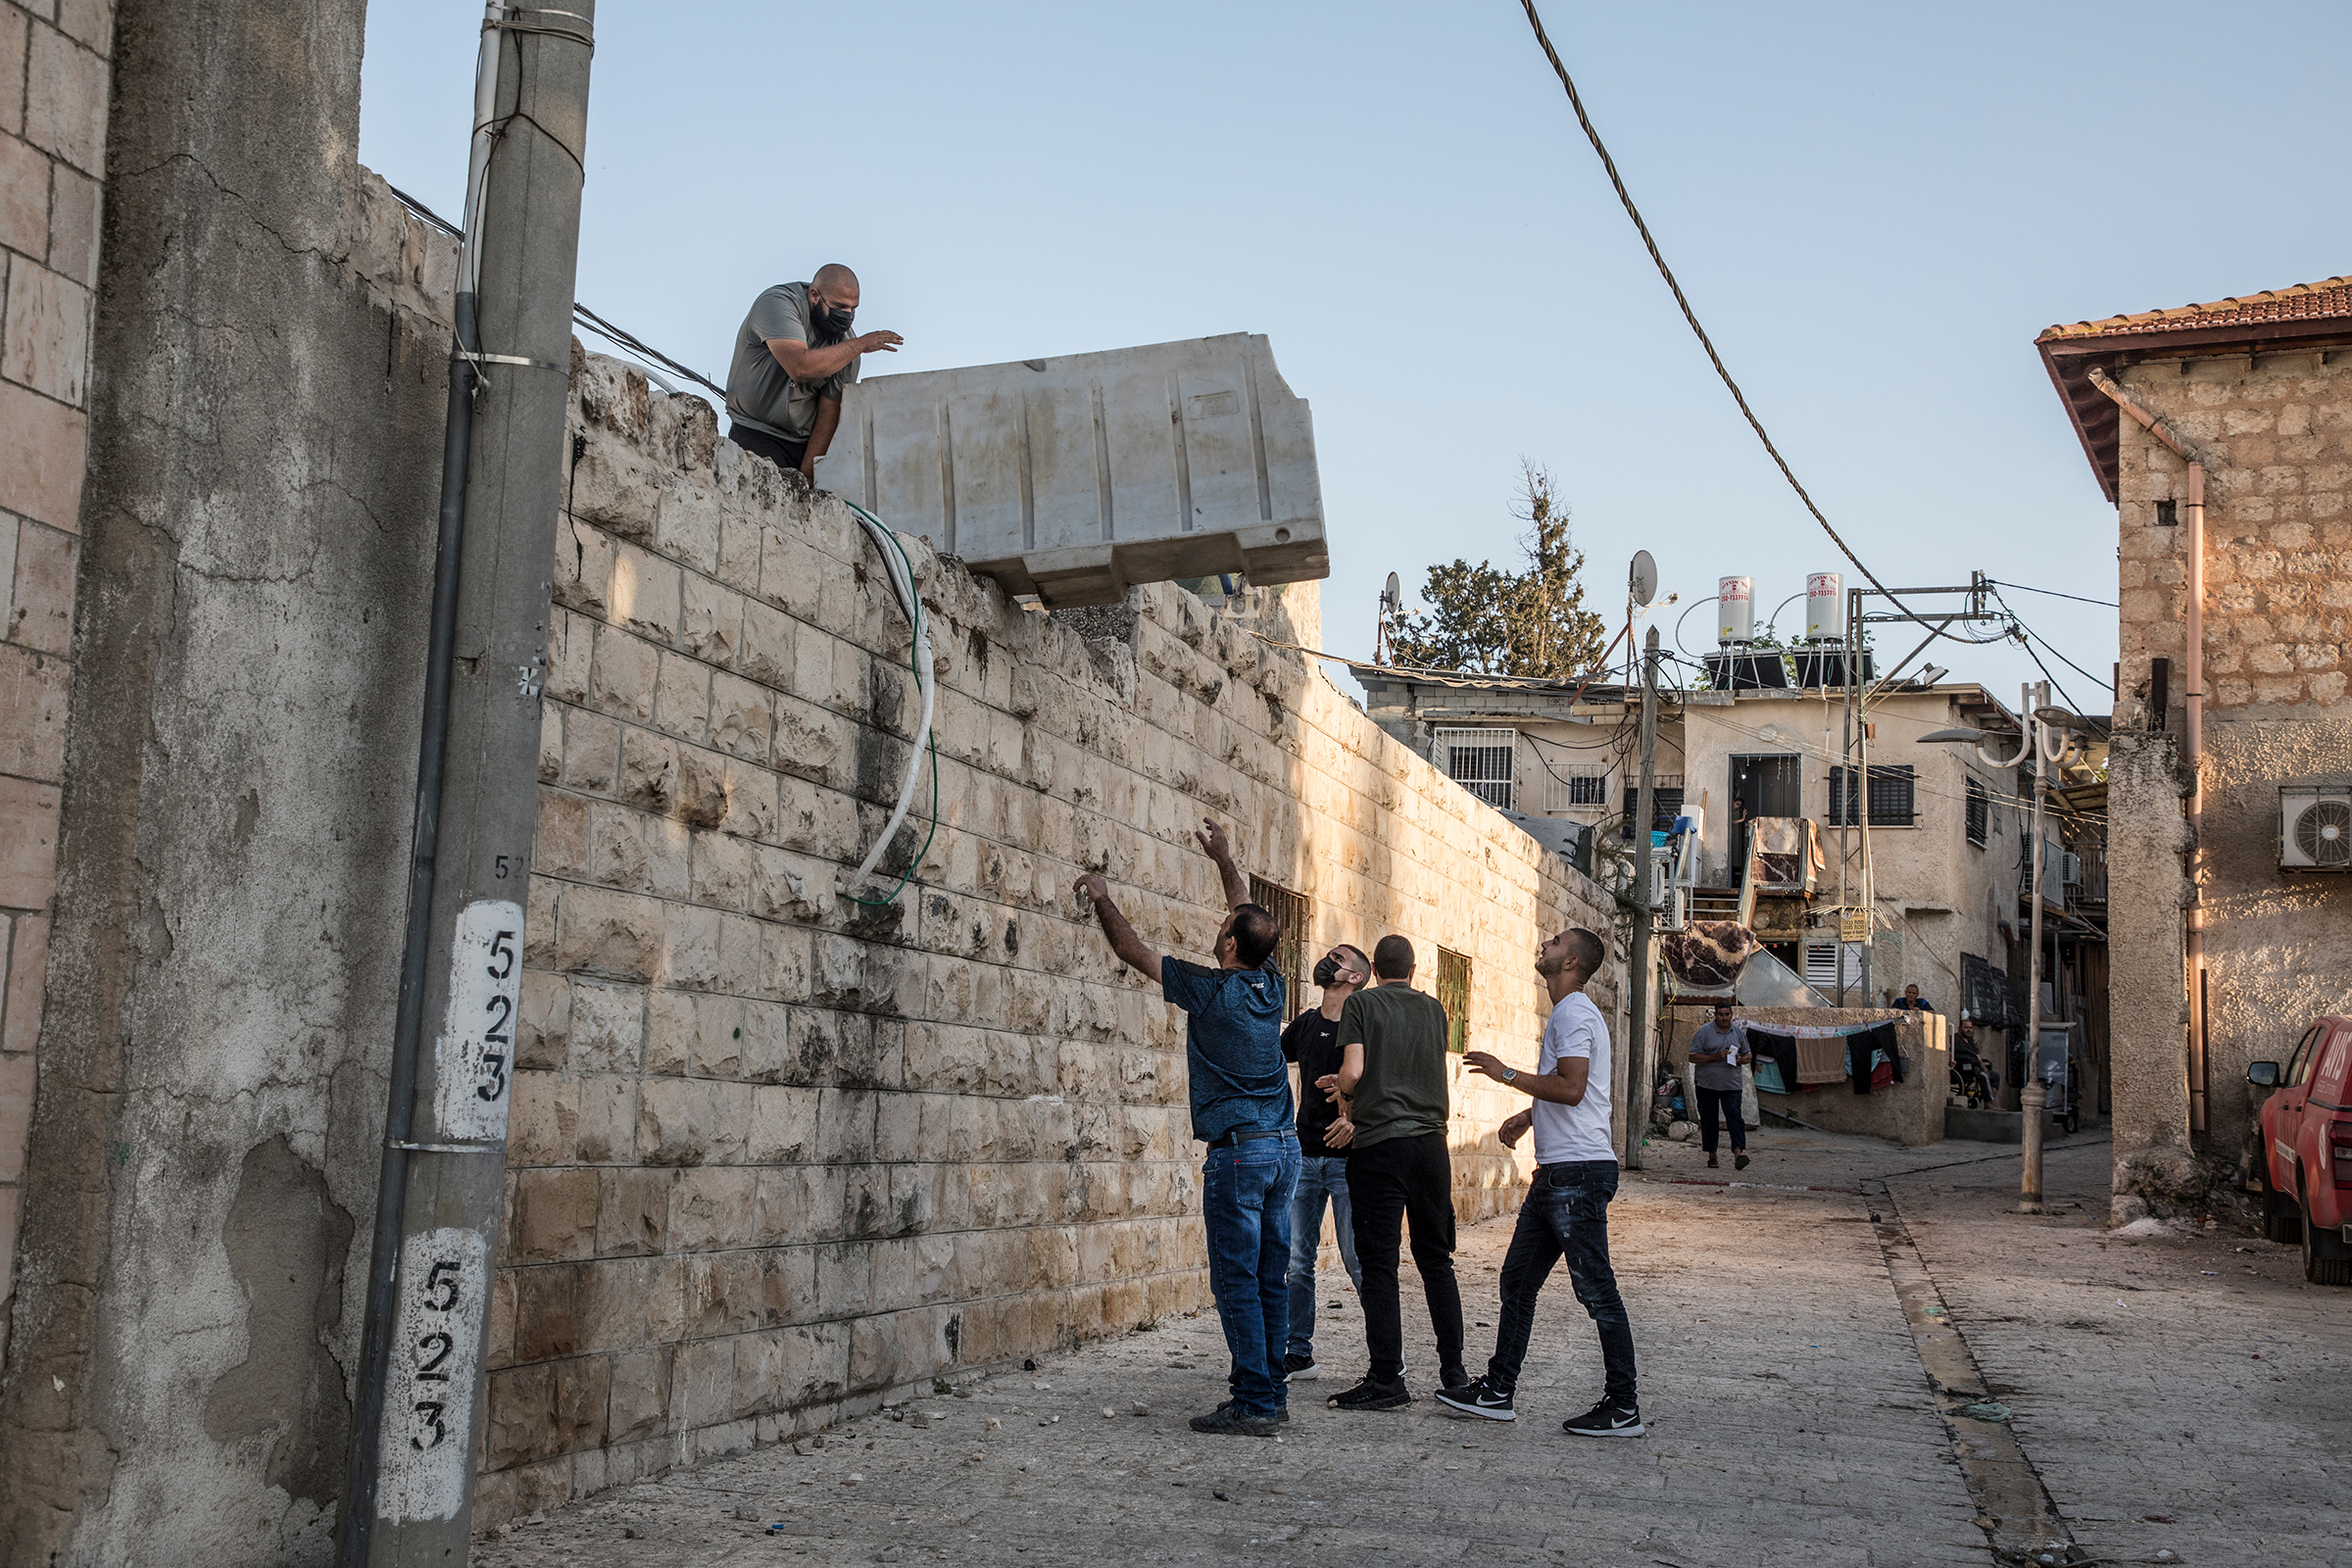 At the mosque in the old city center of Lod, young Palestinians gather on the roof to prepare their defense before expected clashes on May 12, 2021.